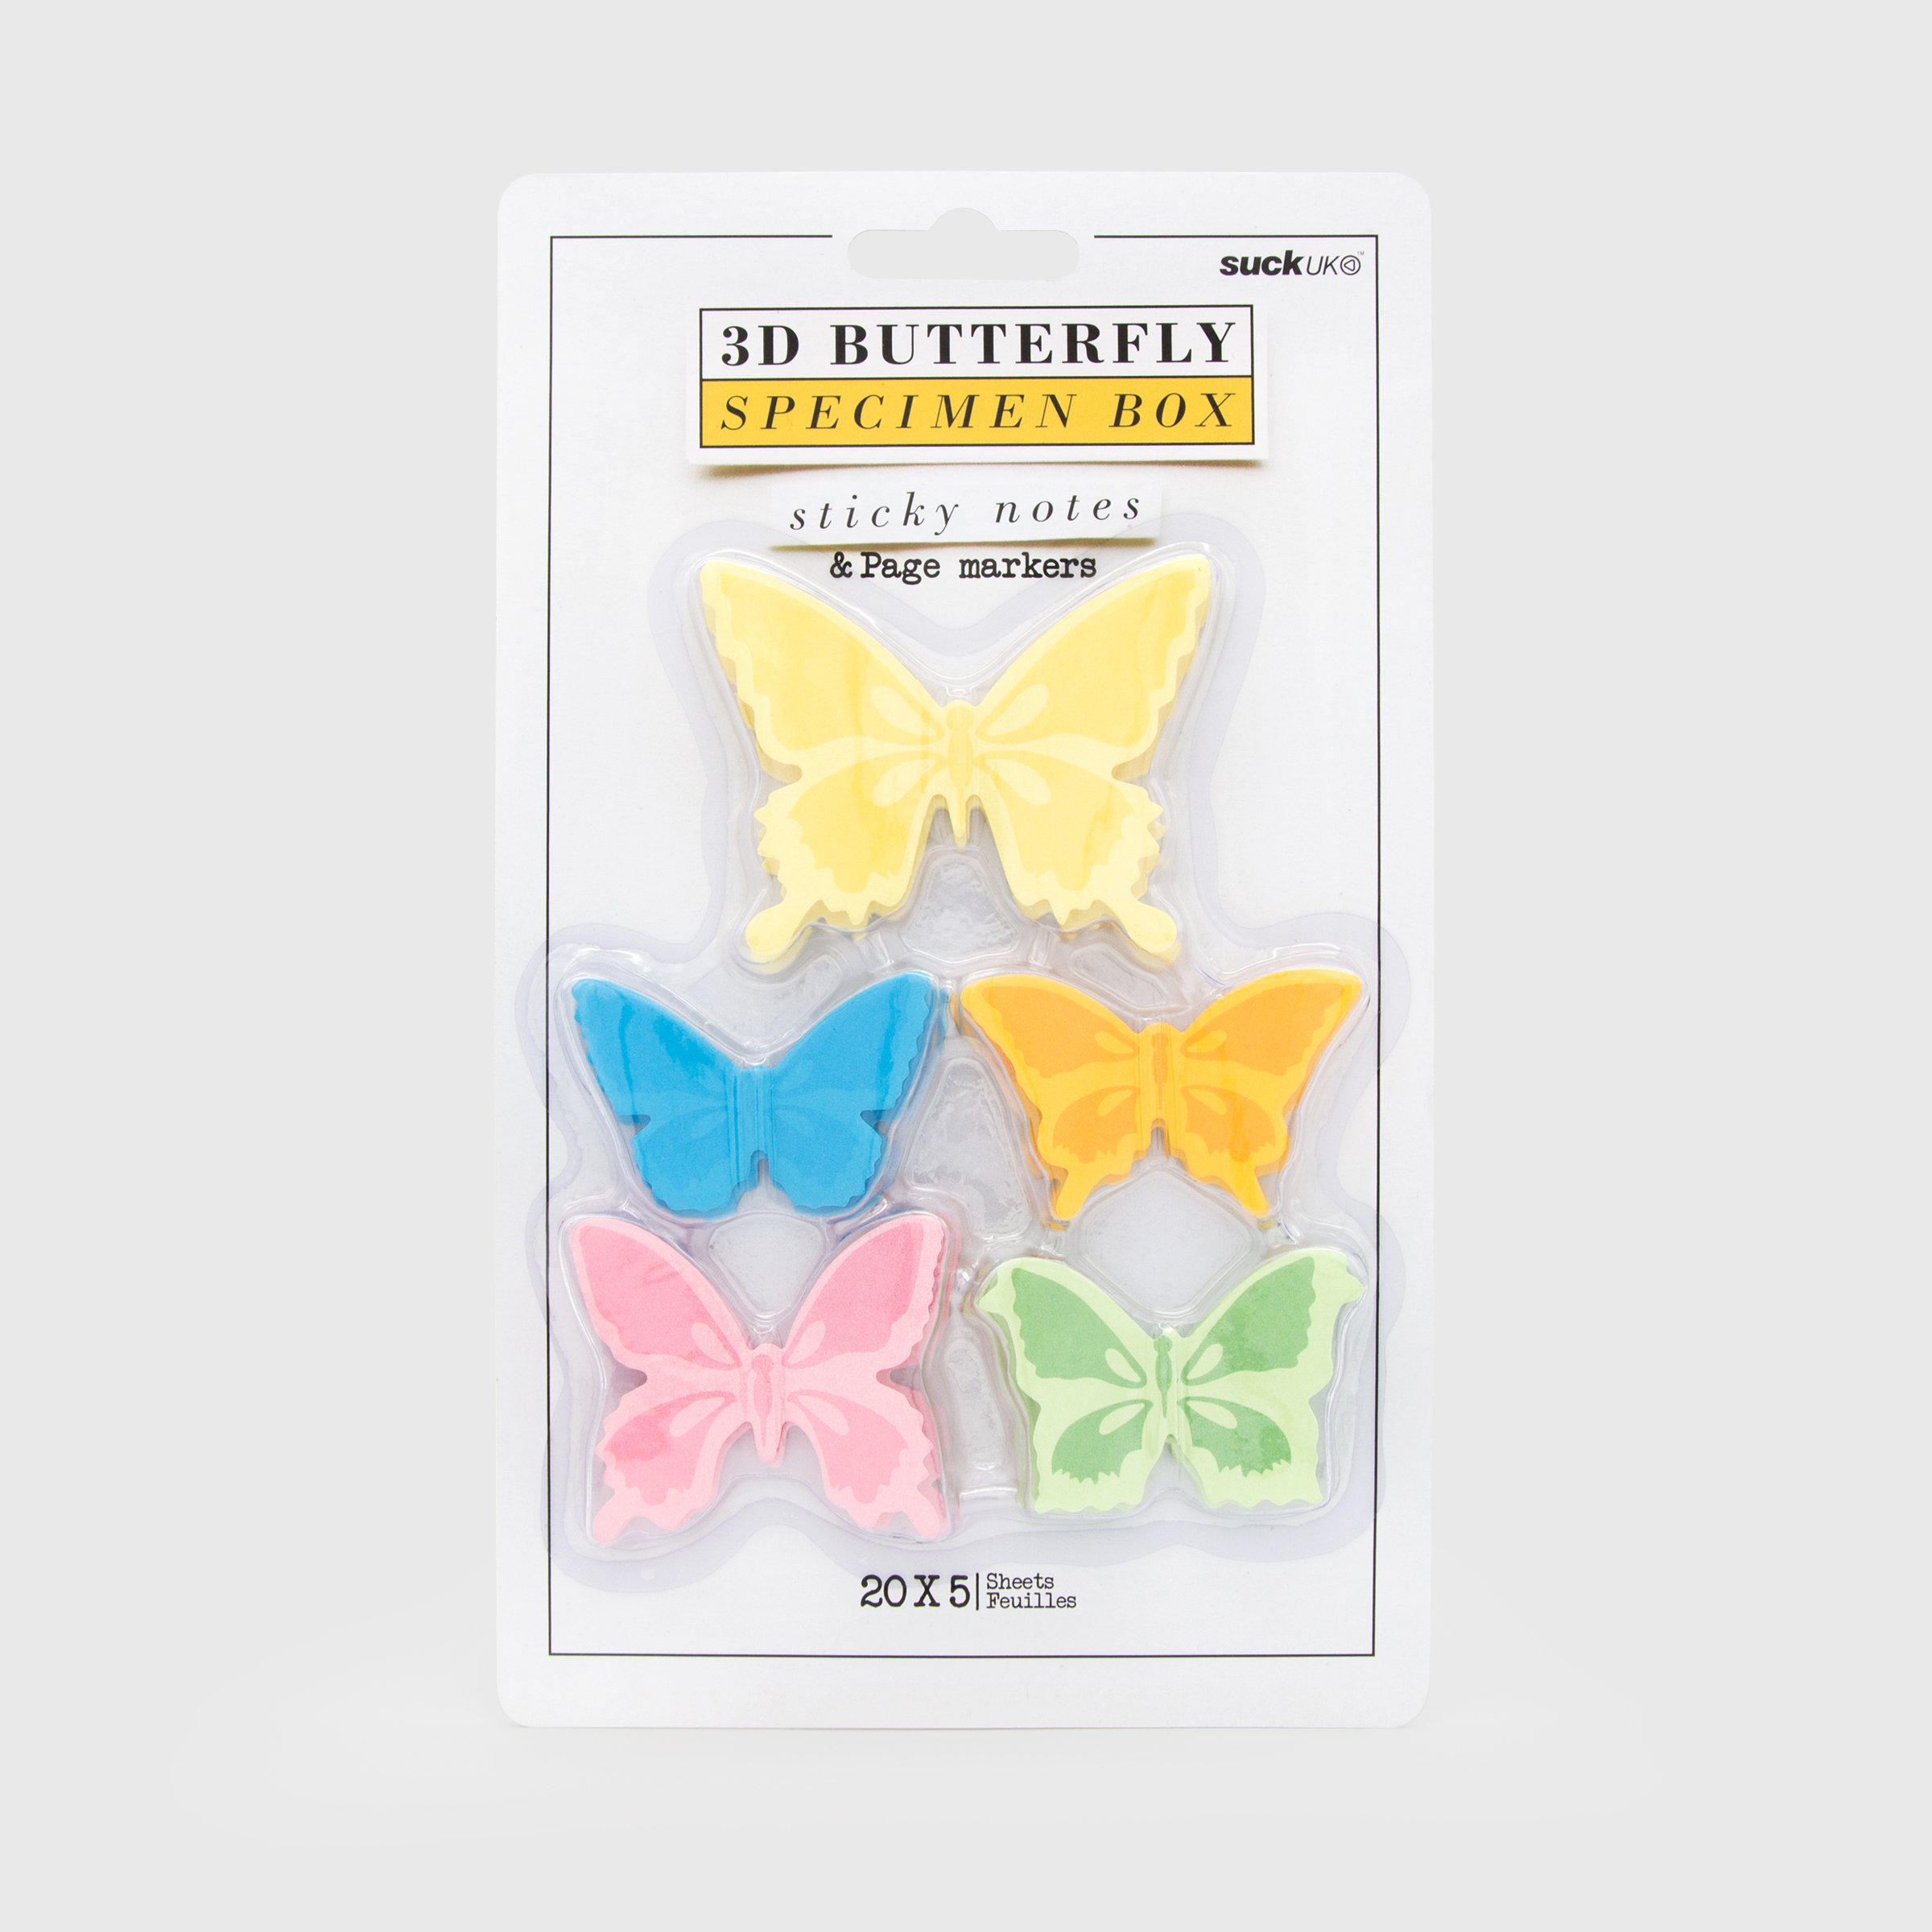 Butterfly sticky notes in specimen box style packaging